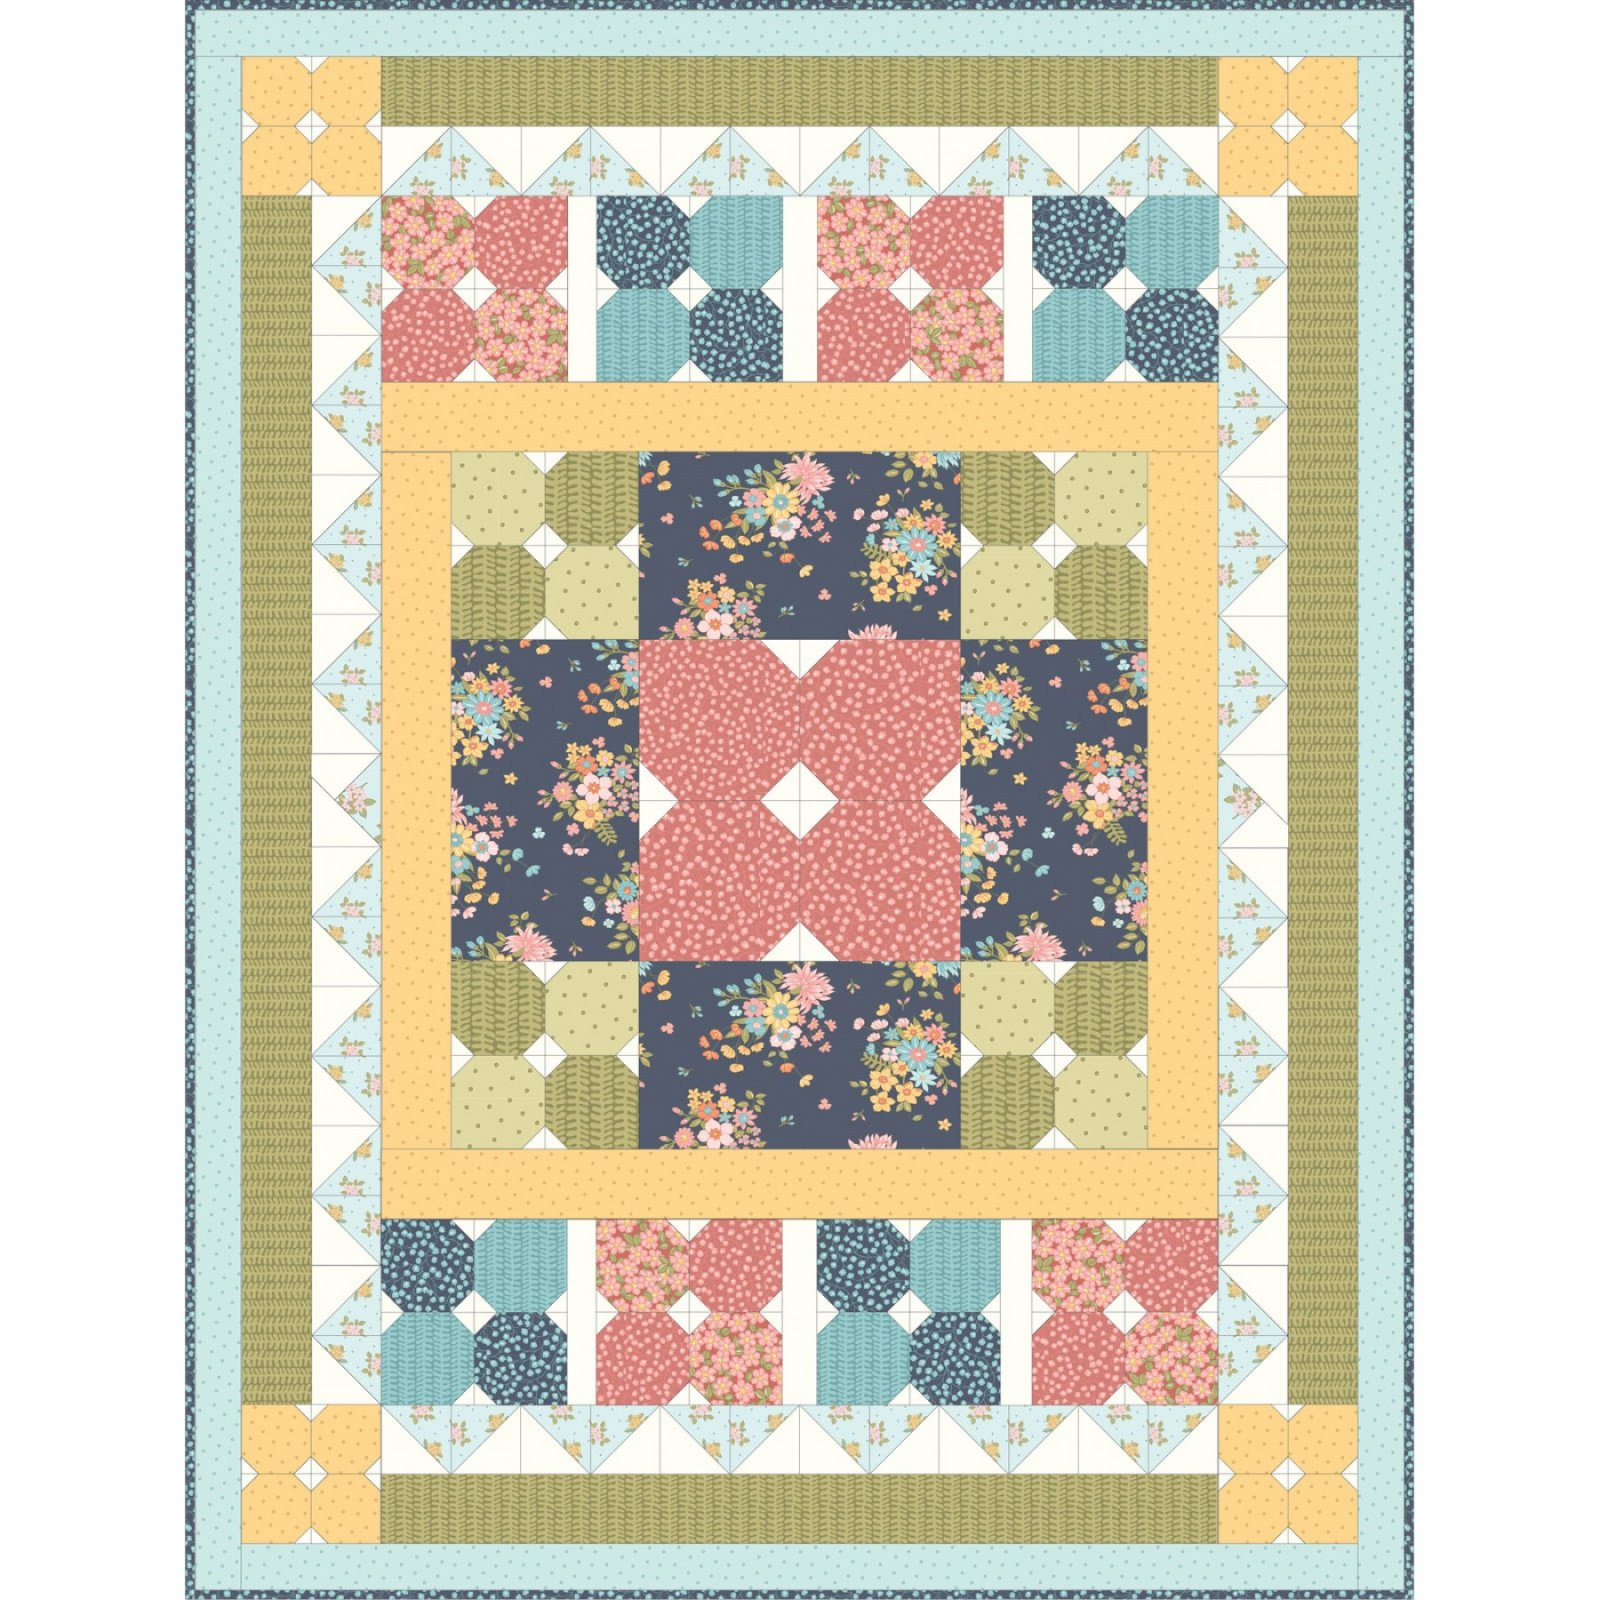 Sunlit Blooms Quilt Kit by Maywood Studio : Kit-Massub